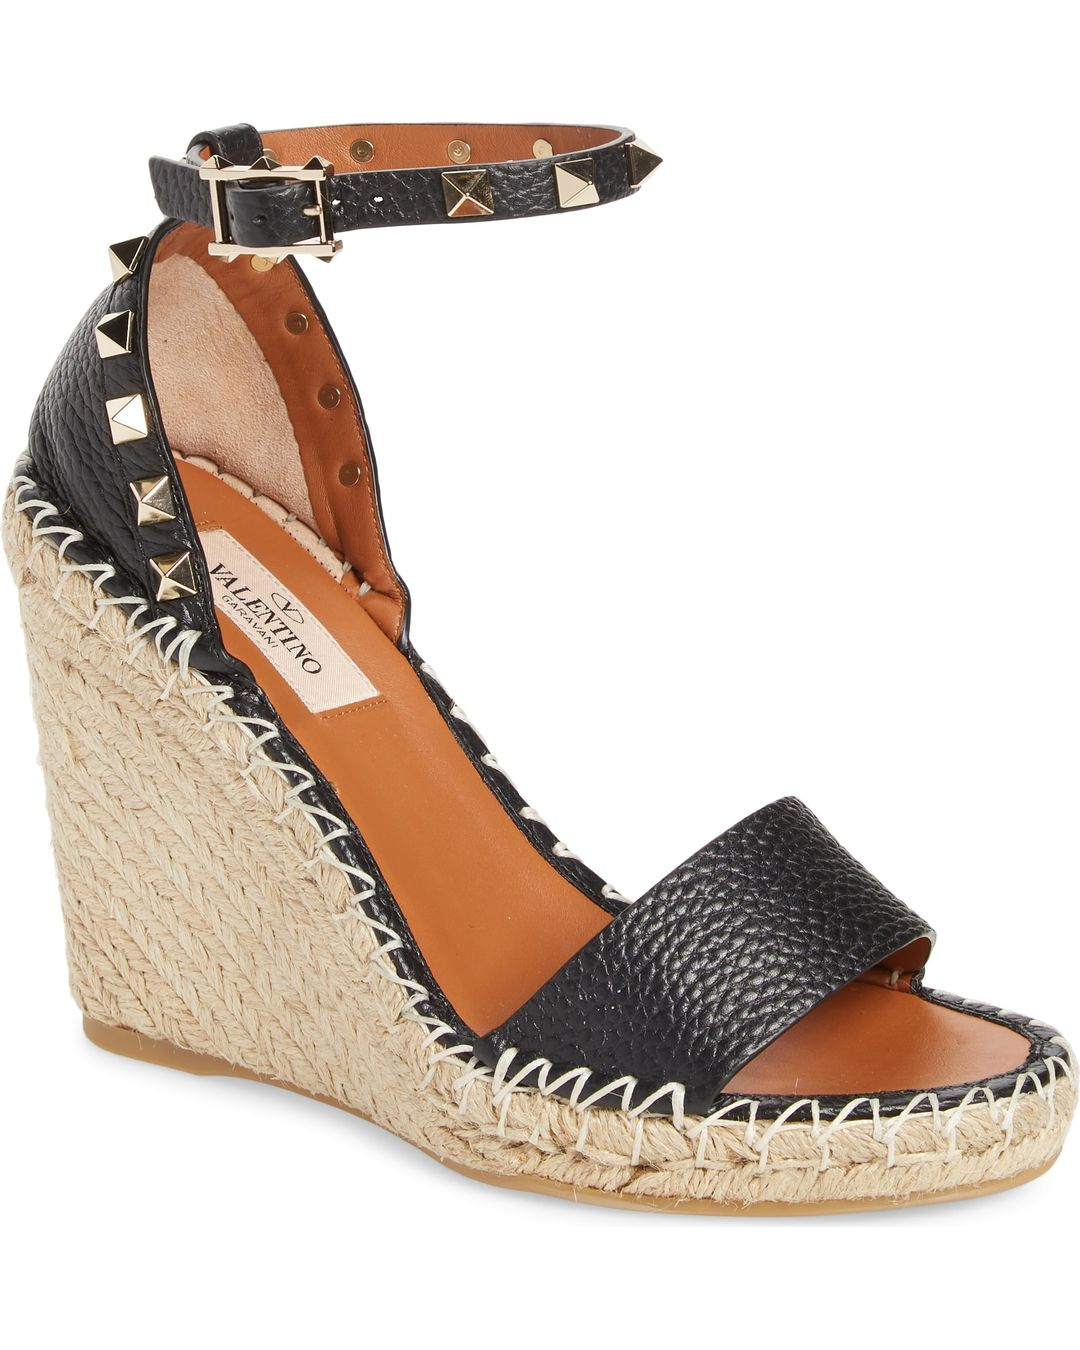 78de2f2ac7 Valentino Garavani Rockstud Espadrille Wedge Reviews and Sizing